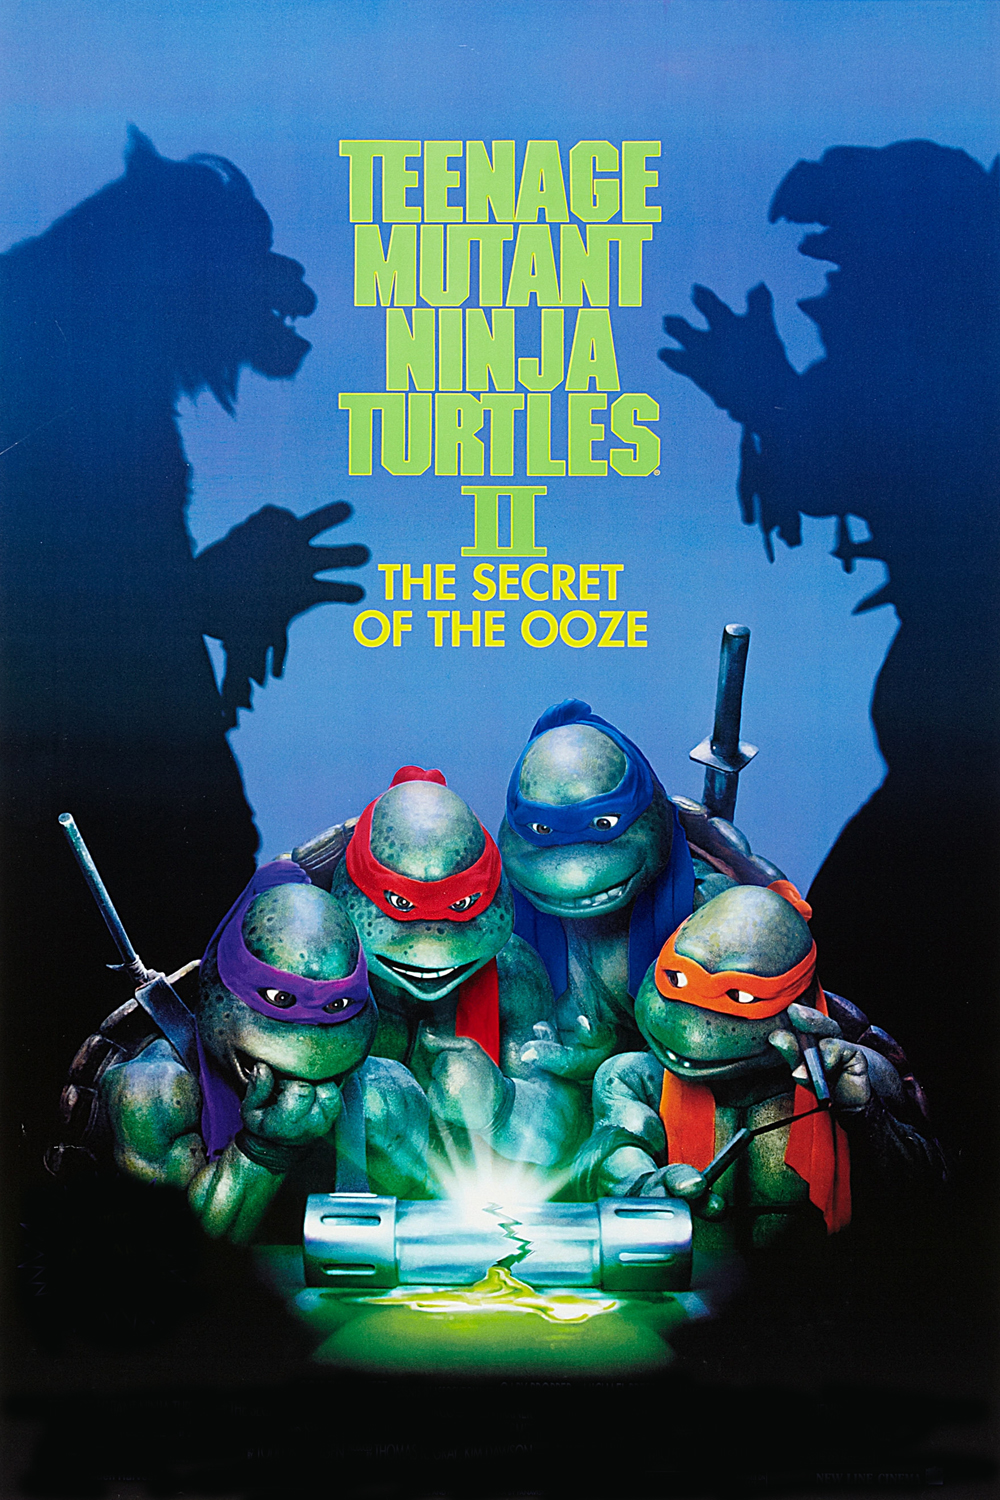 Teenage Mutant Ninja Turtles 2014 Movie Review TMNT Original Sequel Secret of the Ooze 2